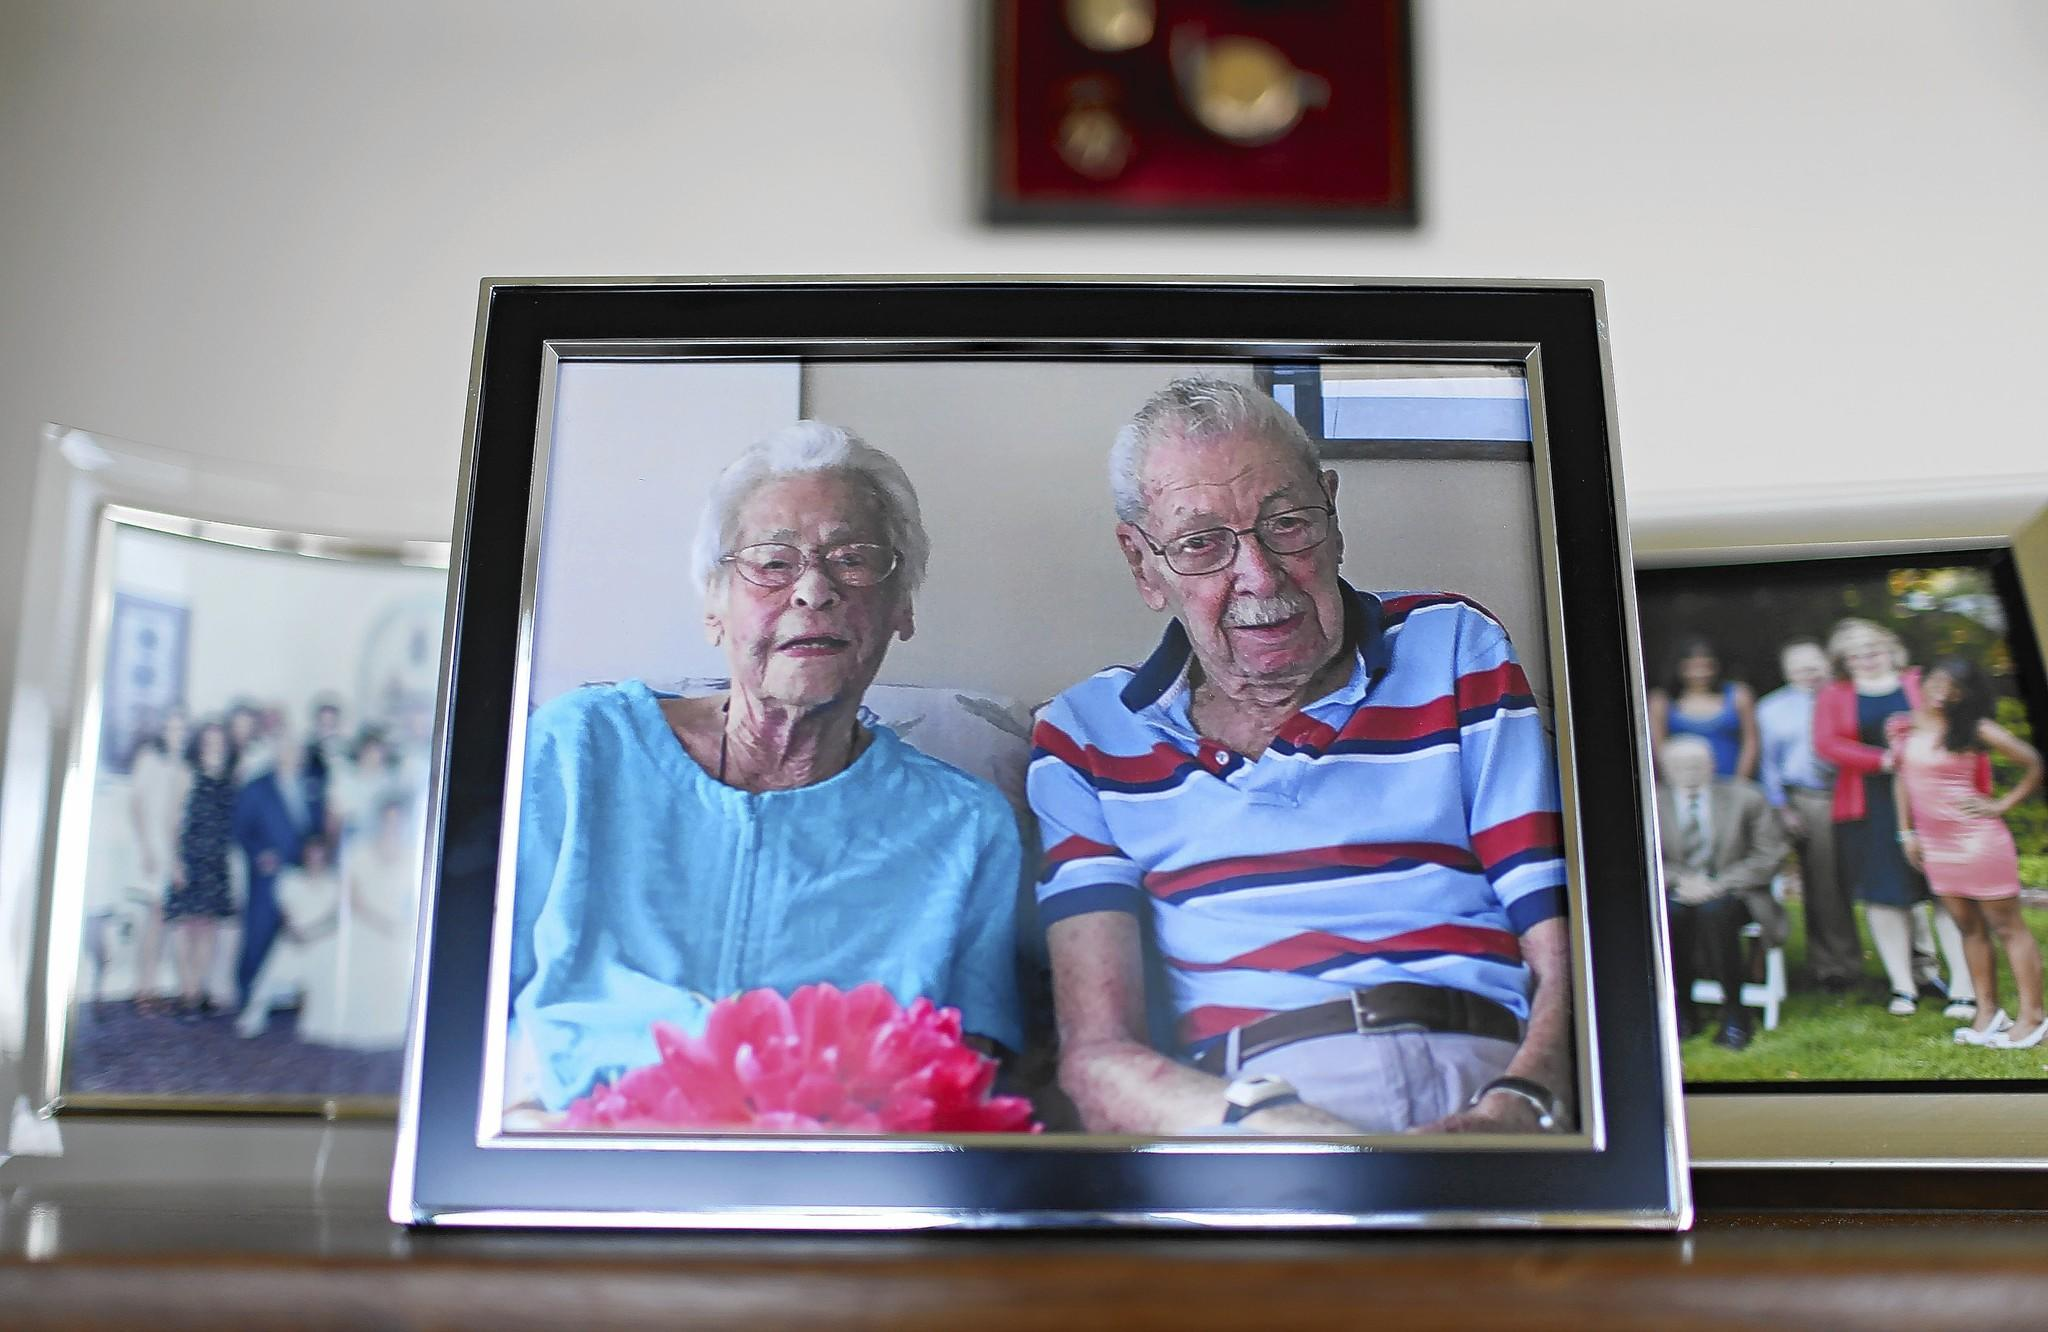 A family photo of Carlyn and Irv Ungar is displayed in their Lakeview home. Carlyn, 100, died earlier this month. Irv, also 100, survives.